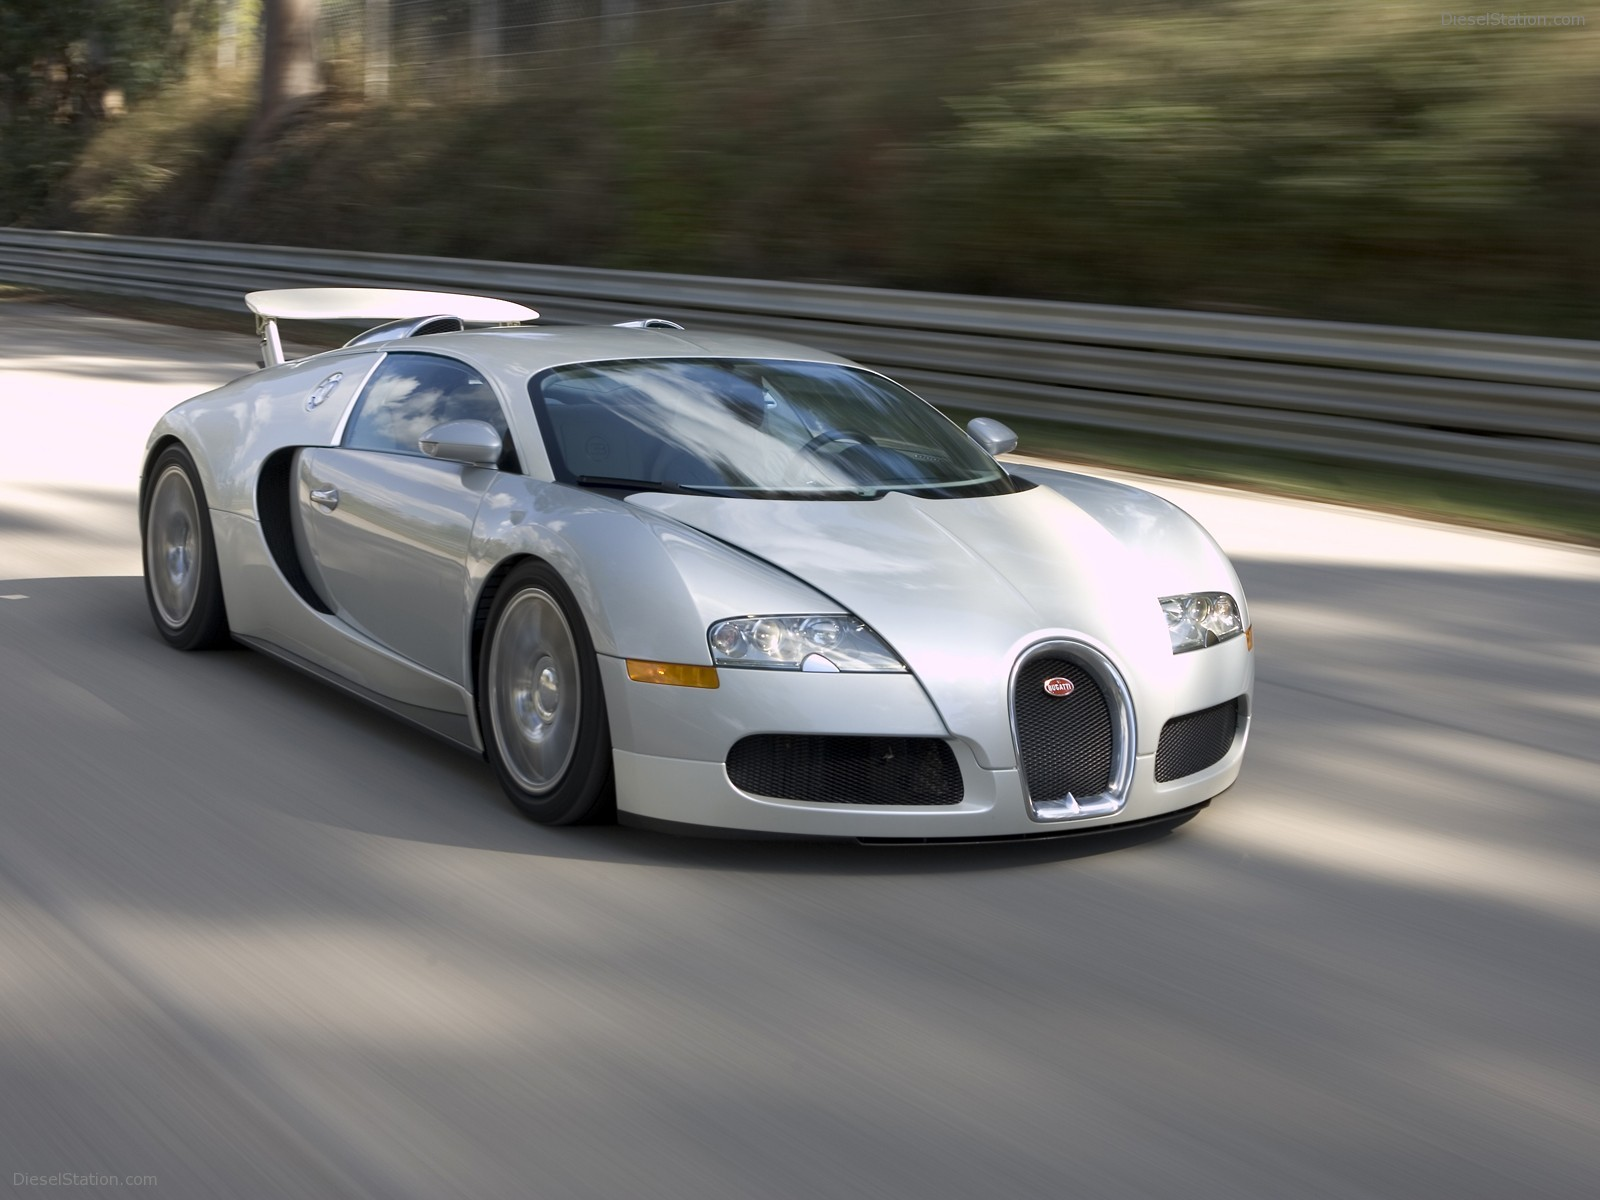 Bugatti Veyron Exotic Car Wallpaper 045 of 85 Diesel 1600x1200